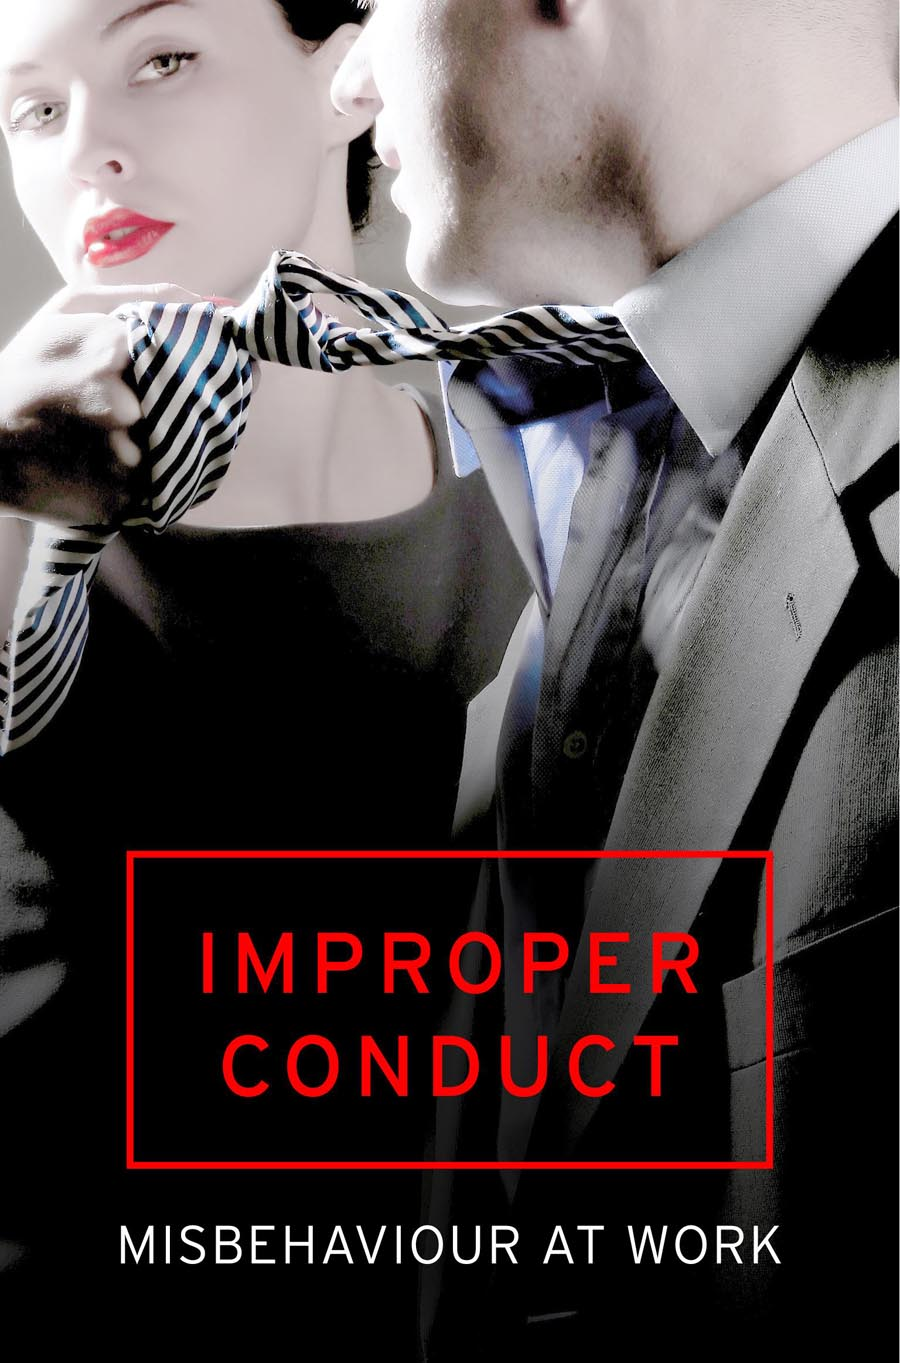 Various Improper Conduct conduct under fire